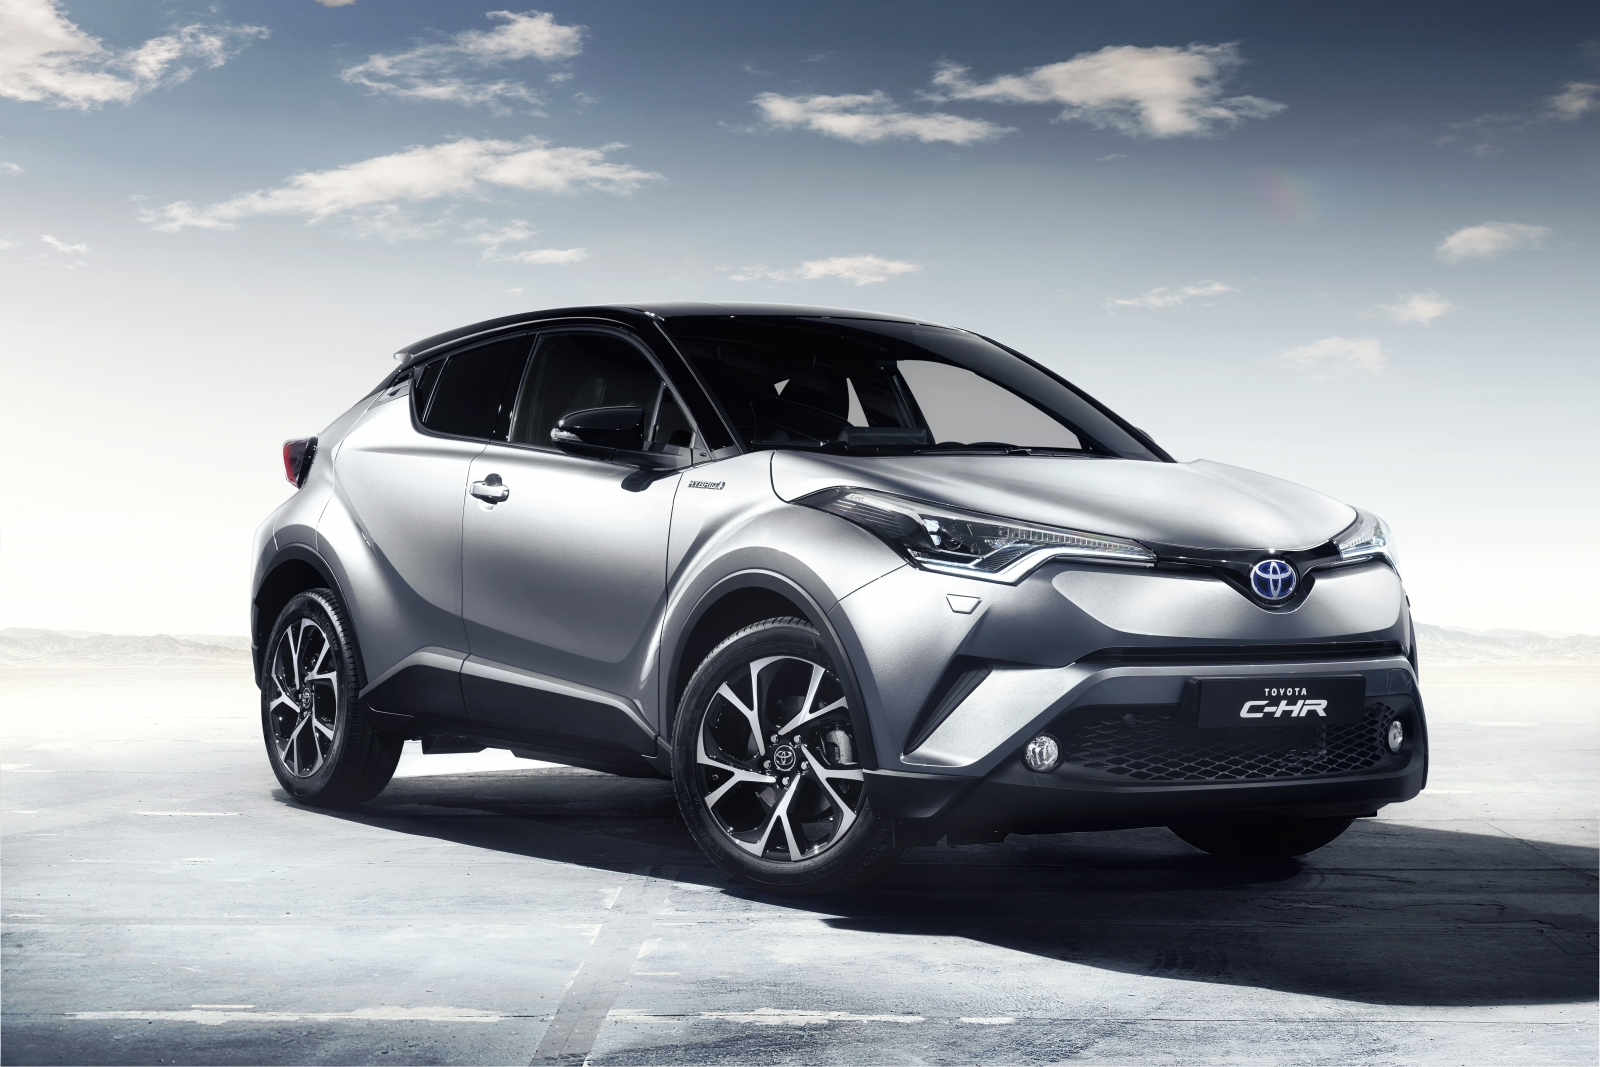 Toyota ditches diesel option from C-HR model, wants to kill it off for future cars